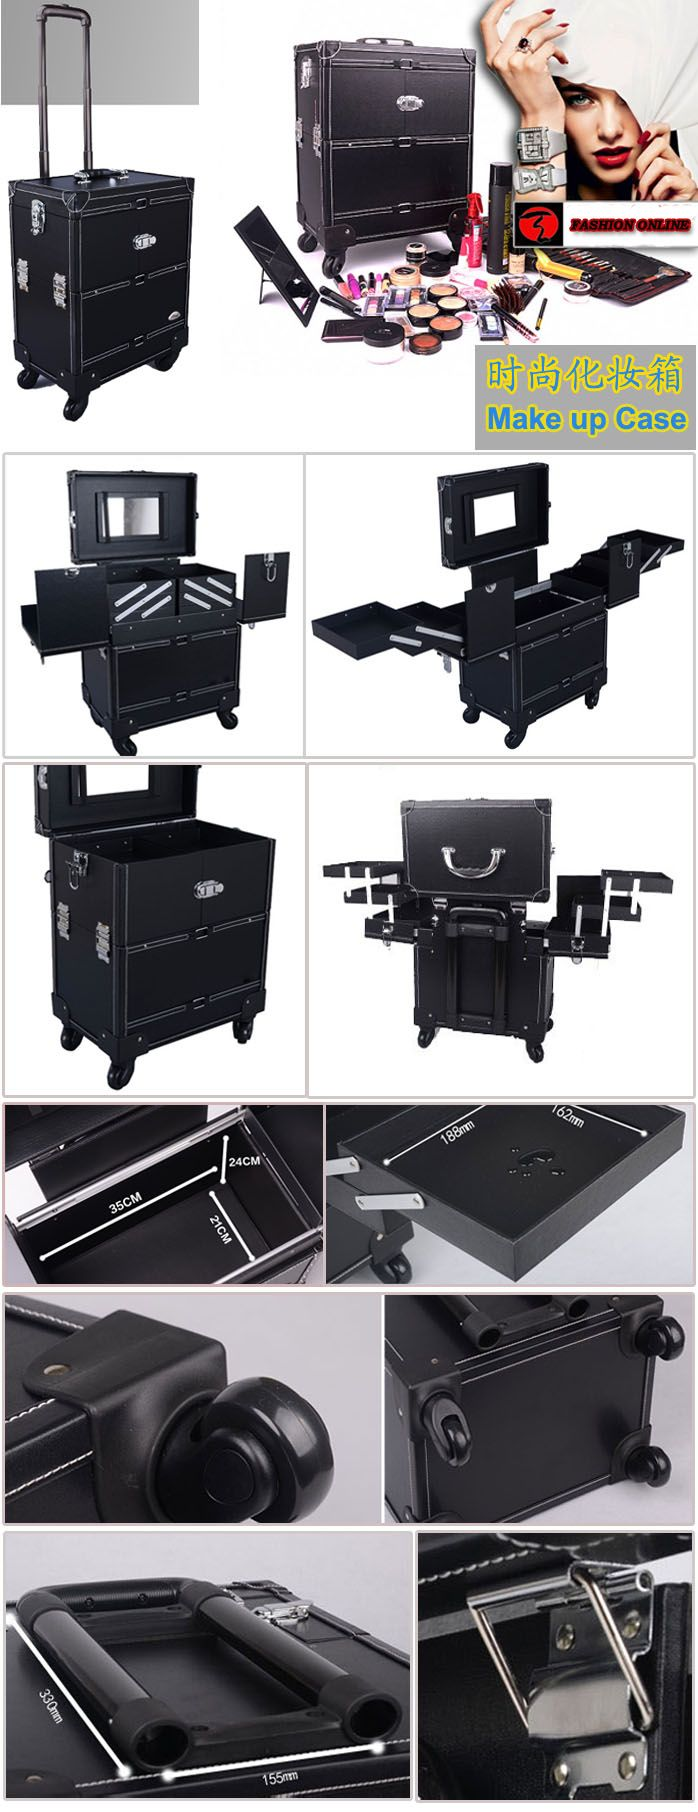 It is essential to have such a large capacity makeup case TXMC-002 to a professional dresser.